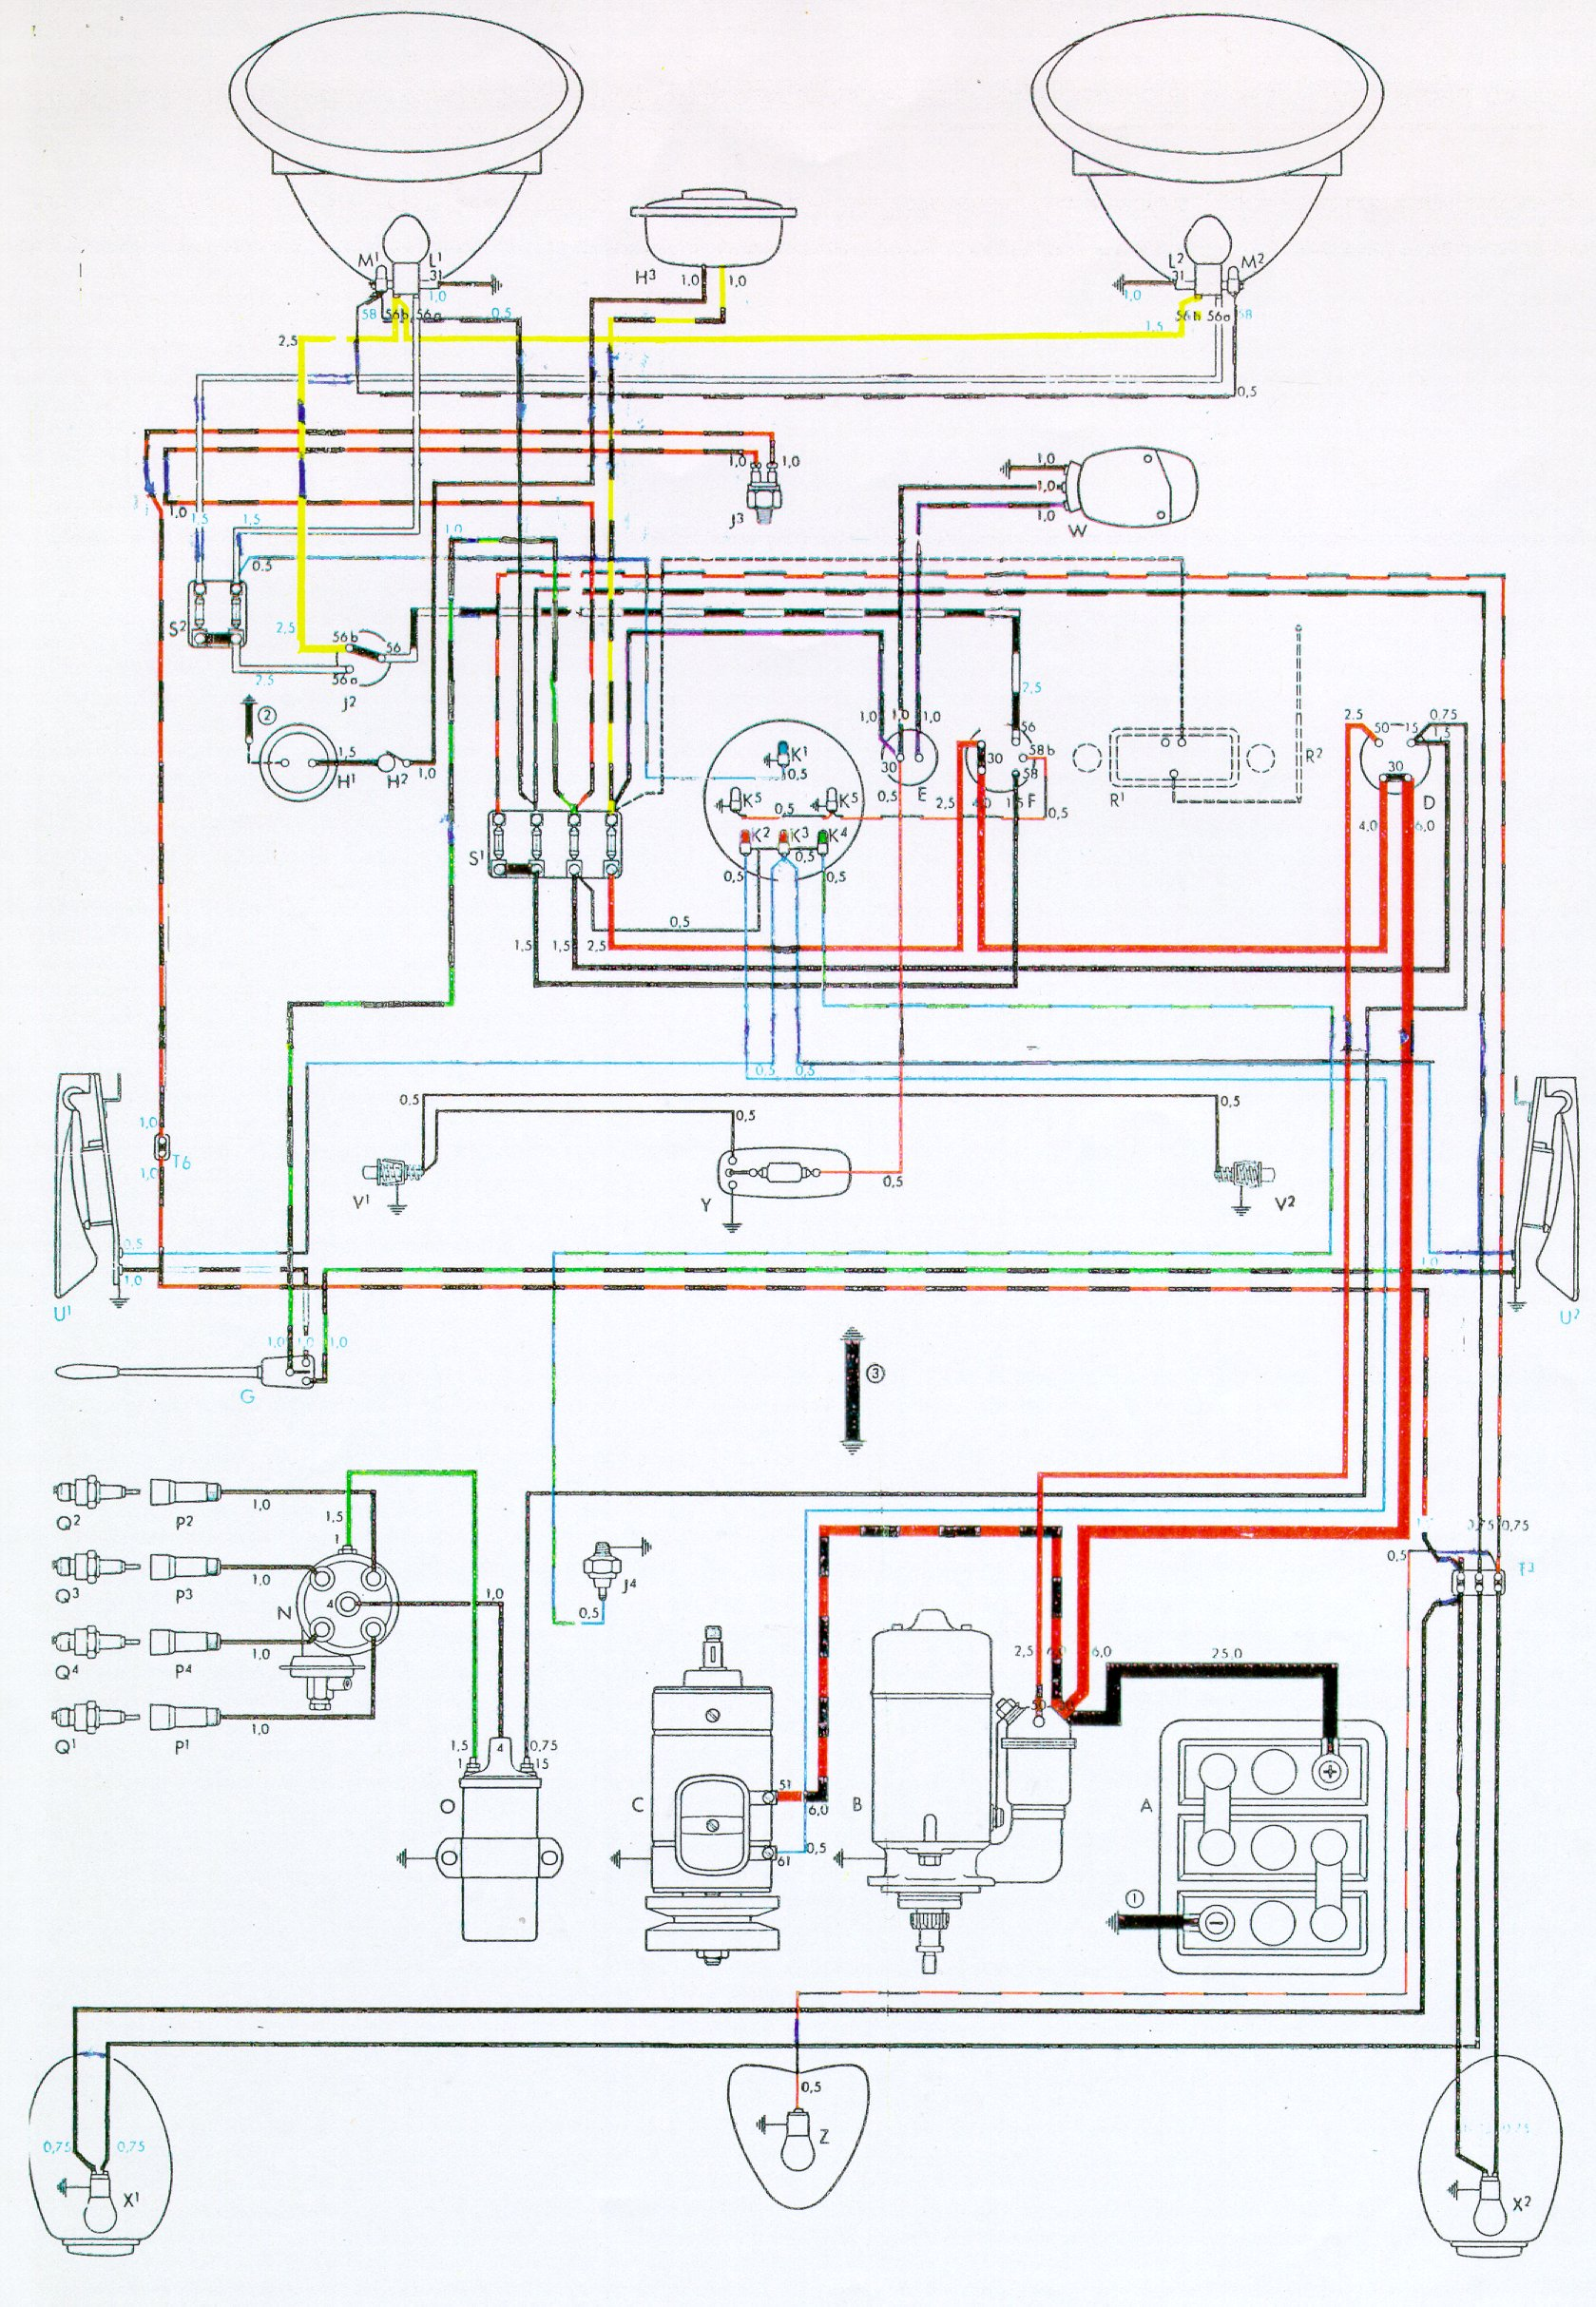 vw bus engine wiring data wiring diagrams \u2022 74 beetle fuse box wiring diagram vintagebus com vw bus and other wiring diagrams rh vintagebus com vw alternator wiring diagram vw bug starter wiring